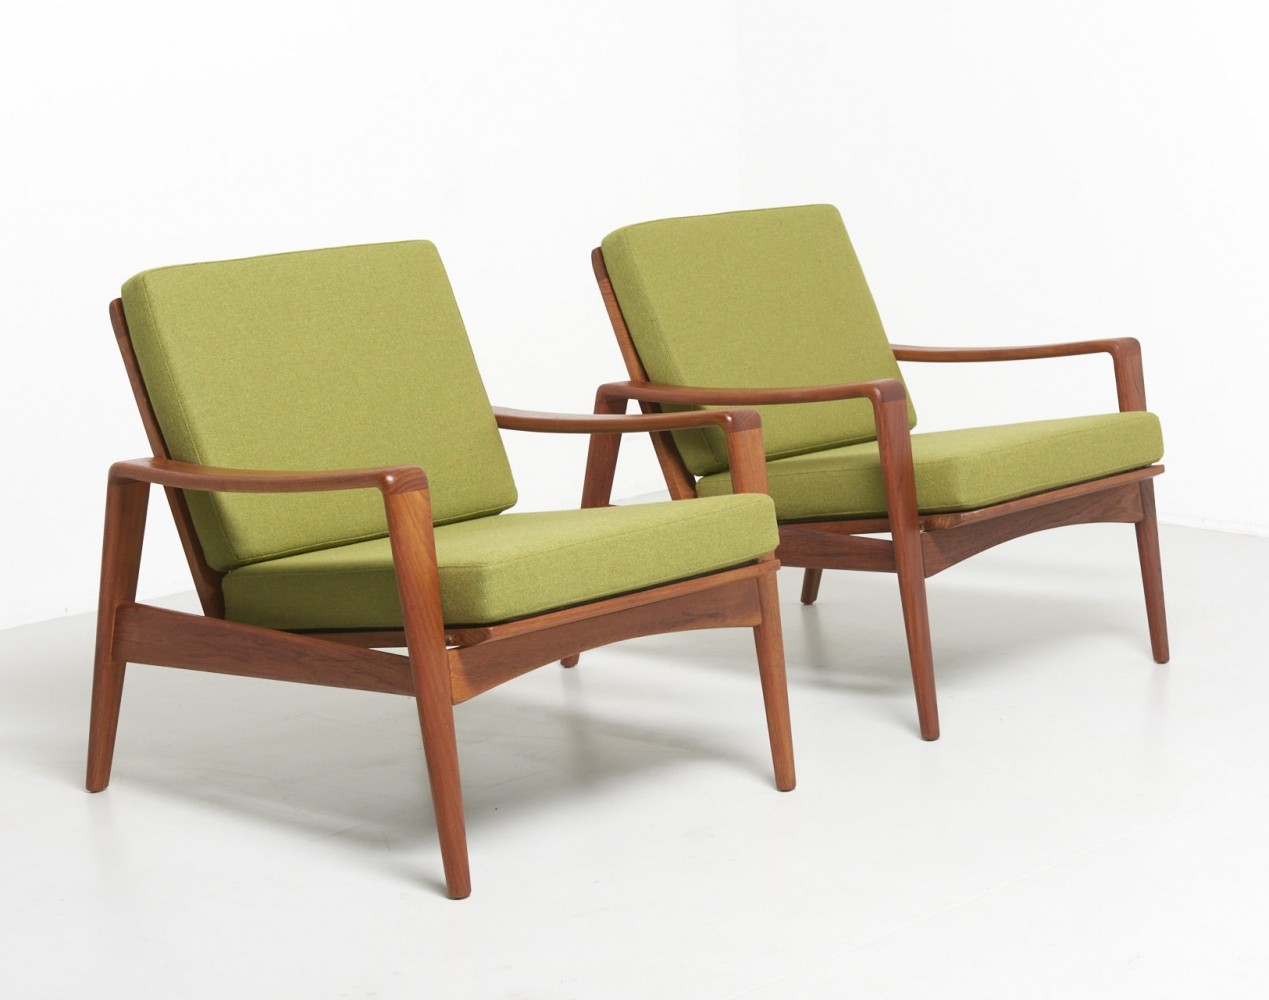 Pair of Teak Easy Chairs by Arne Wahl Iversen for Komfort, 1960s